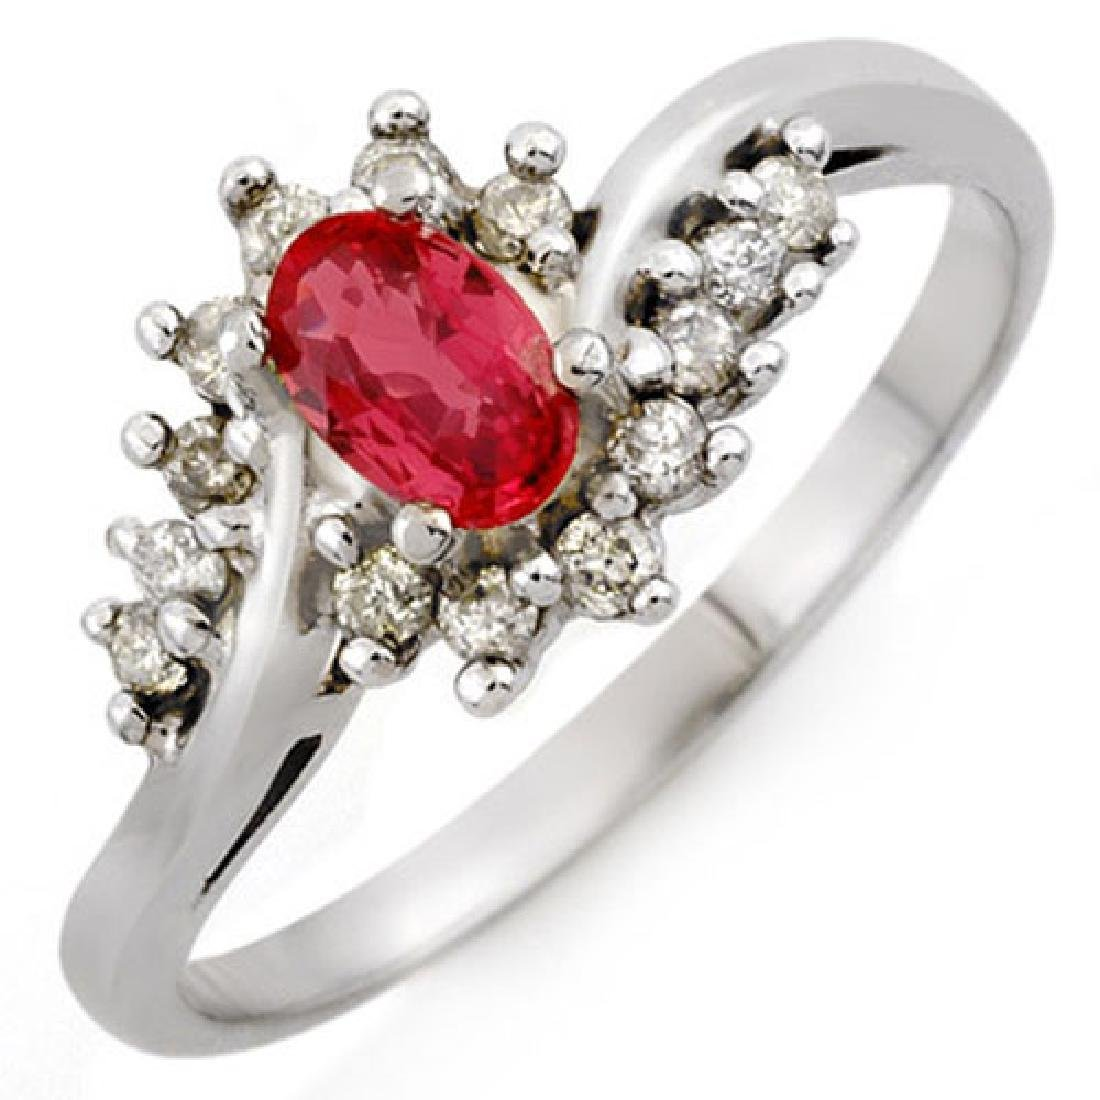 0.55 CTW Red Sapphire & Diamond Ring 10K White Gold